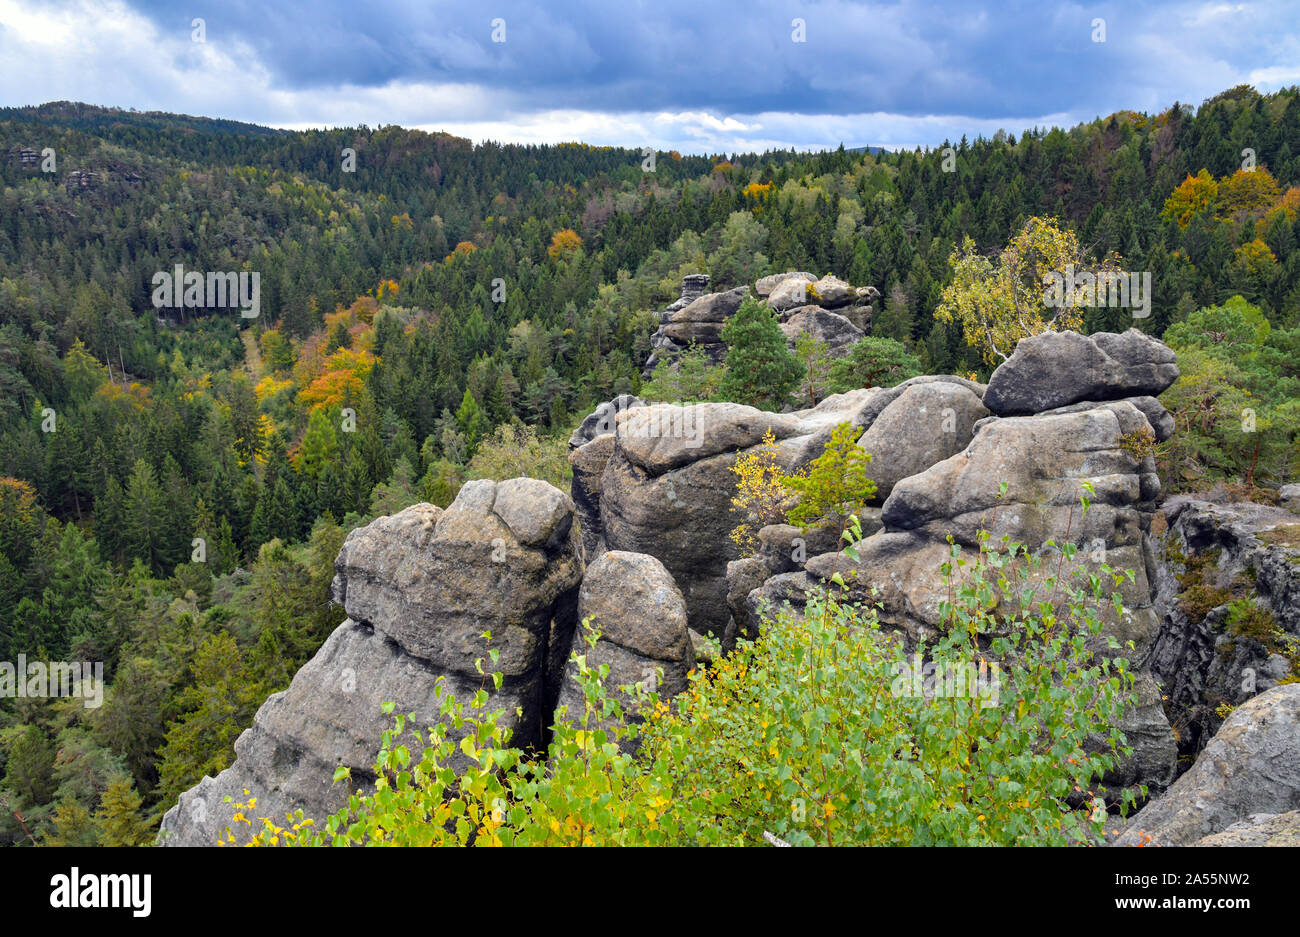 Jonsdorf, Germany. 09th Oct, 2019. The sandstone formation of Nonnenfelsen in the health resort Jonsdorf in the Zittau Mountains on the border with the Czech Republic and Poland. Credit: Patrick Pleul/dpa-Zentralbild/ZB/dpa/Alamy Live News Stock Photo